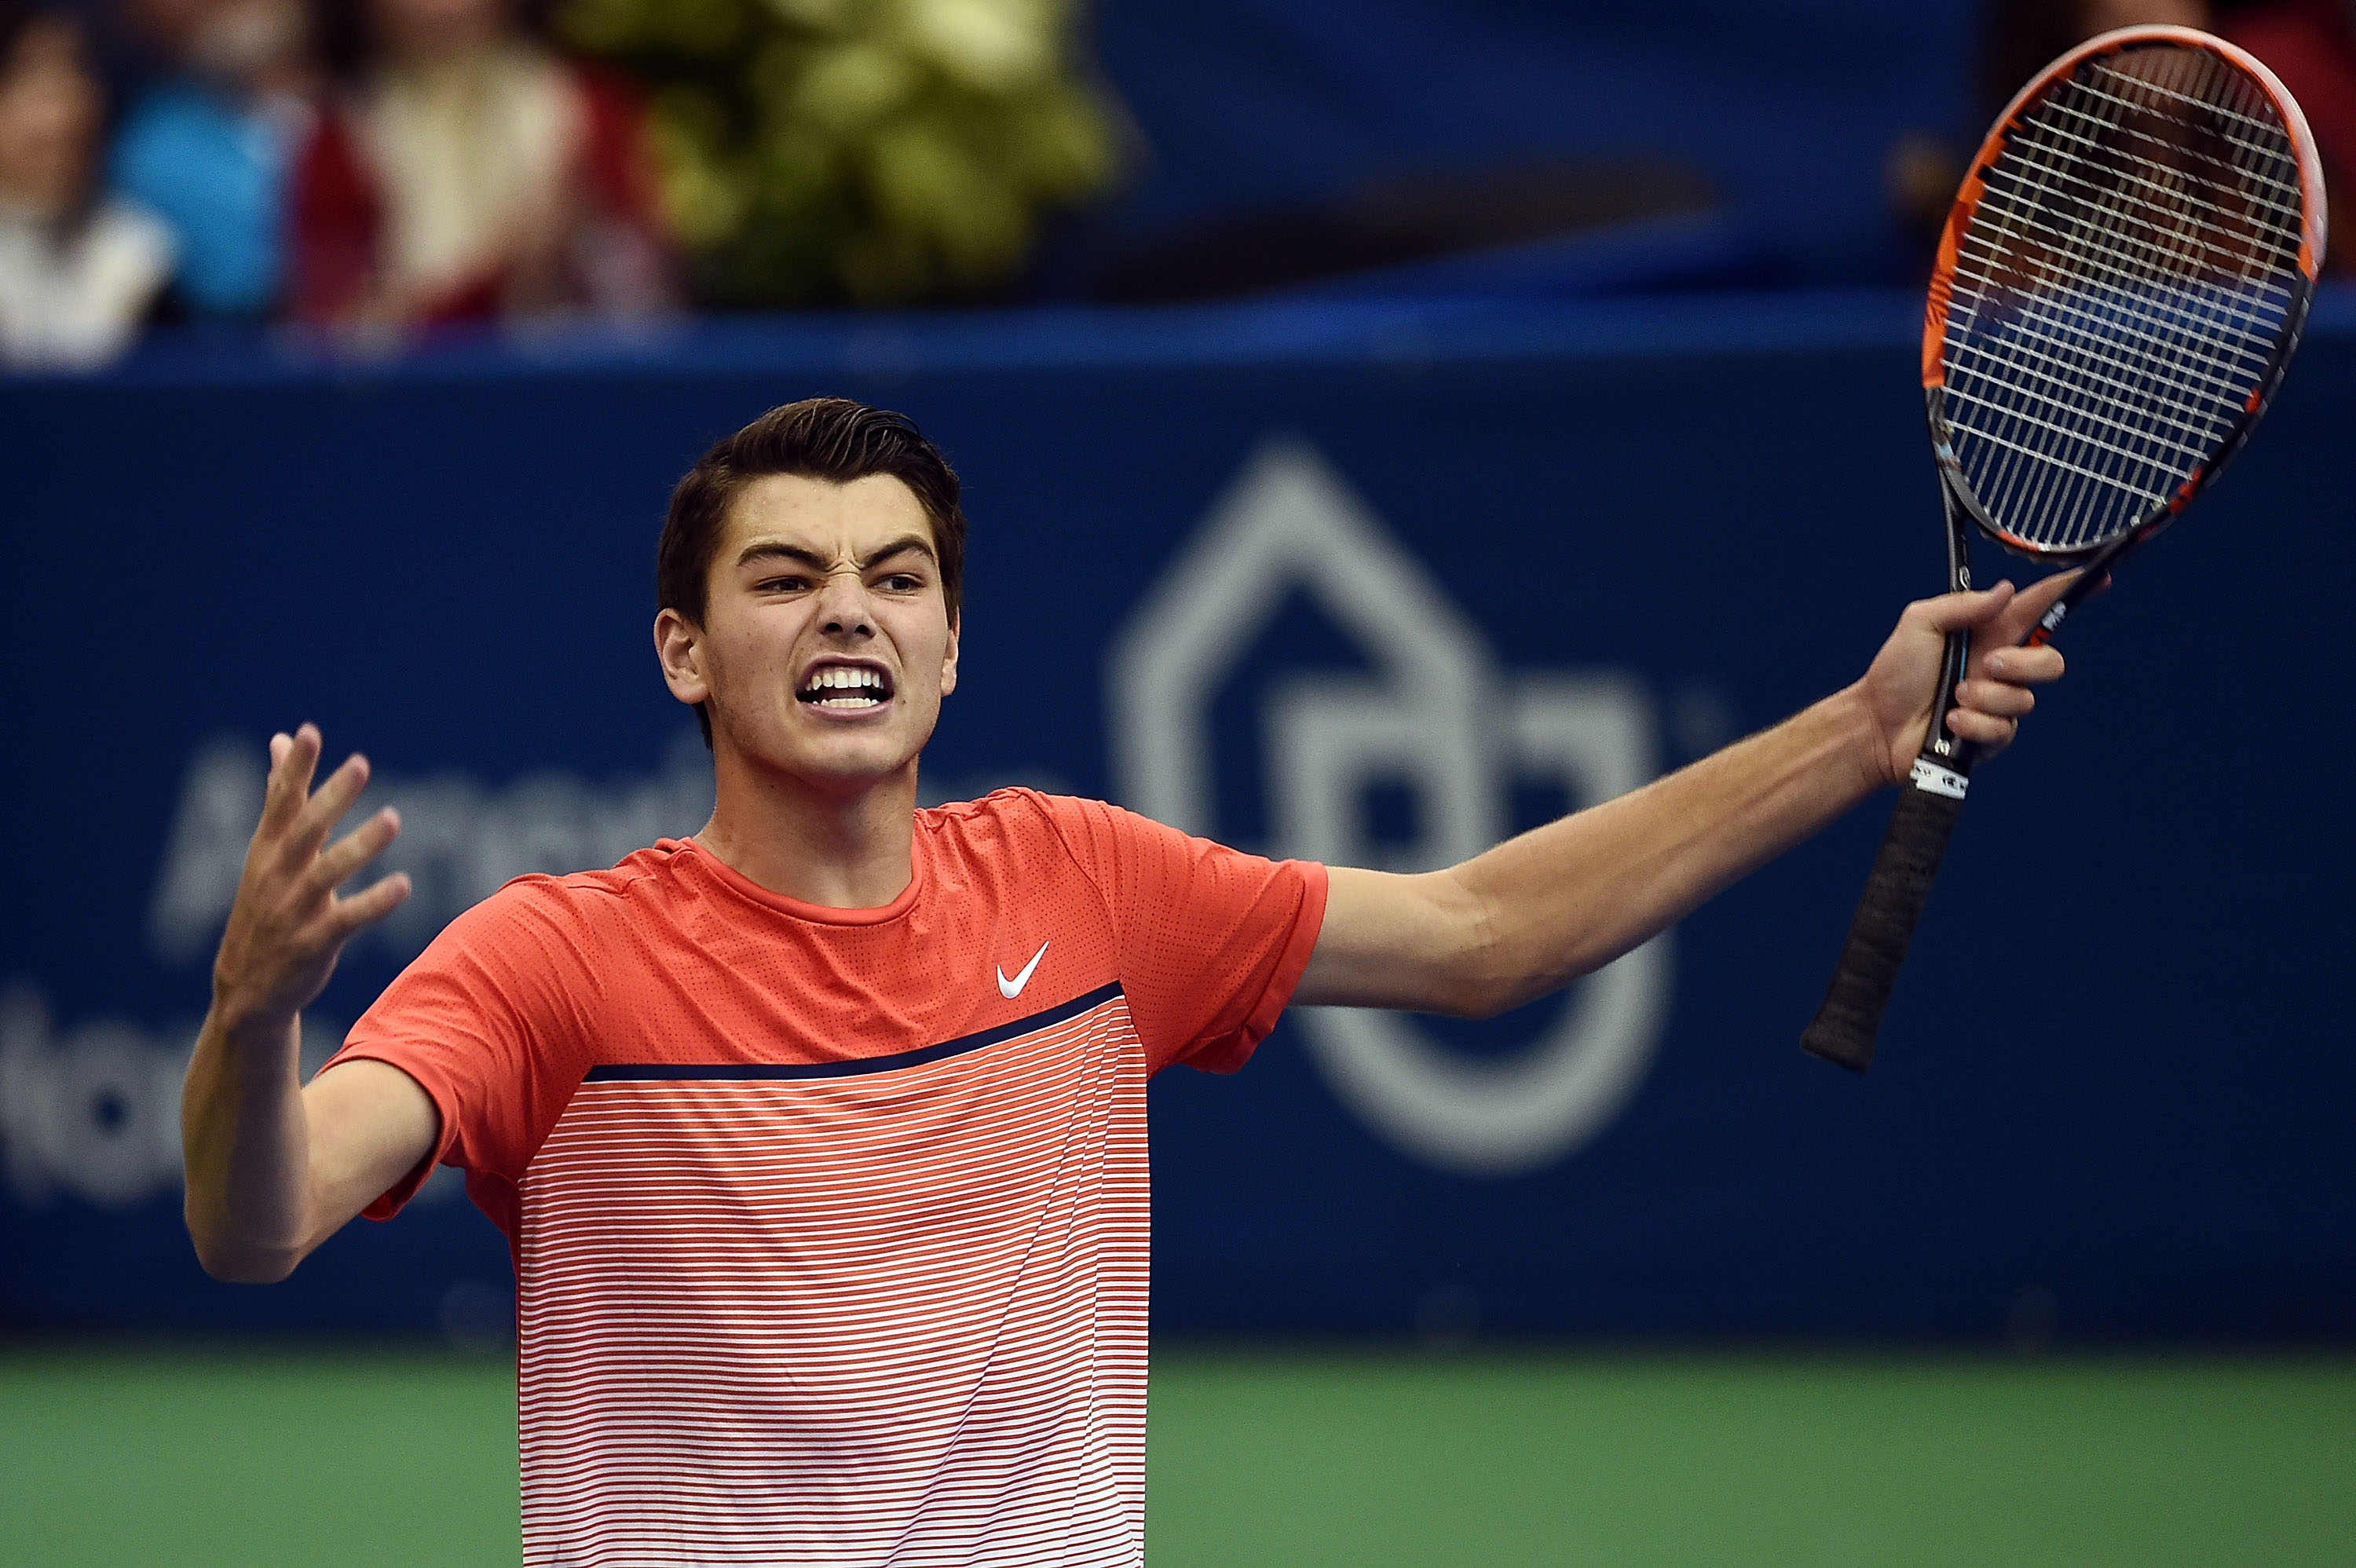 MEMPHIS, TN - FEBRUARY 13: Taylor Fritz of the United States reacts to a victory over Ricardas Berankis of Lithuania in their semi-final singles match on Day 6 of the Memphis Openat the Racquet Club of Memphis on February 13, 2016 in Memphis, Tennessee. (Photo by Stacy Revere/Getty Images)